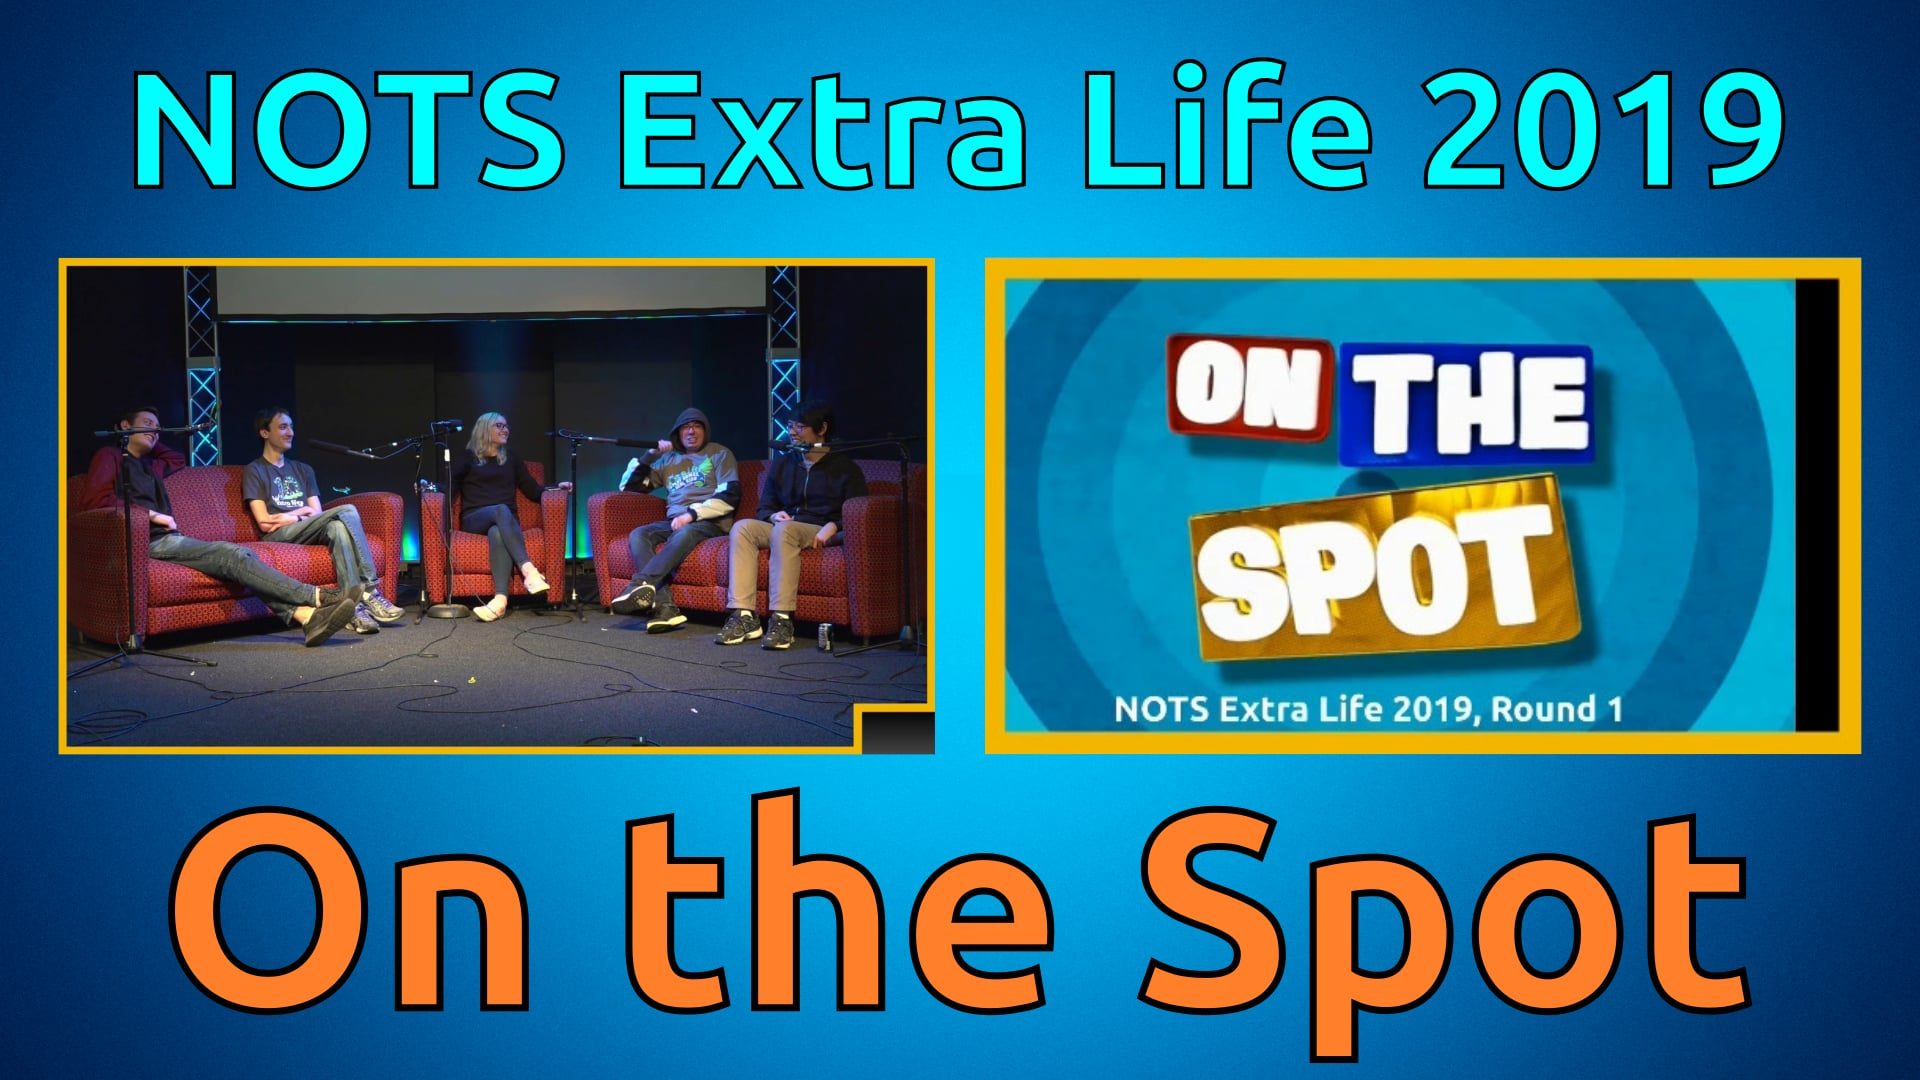 On the Spot (Round 1) - Extra Life 2019